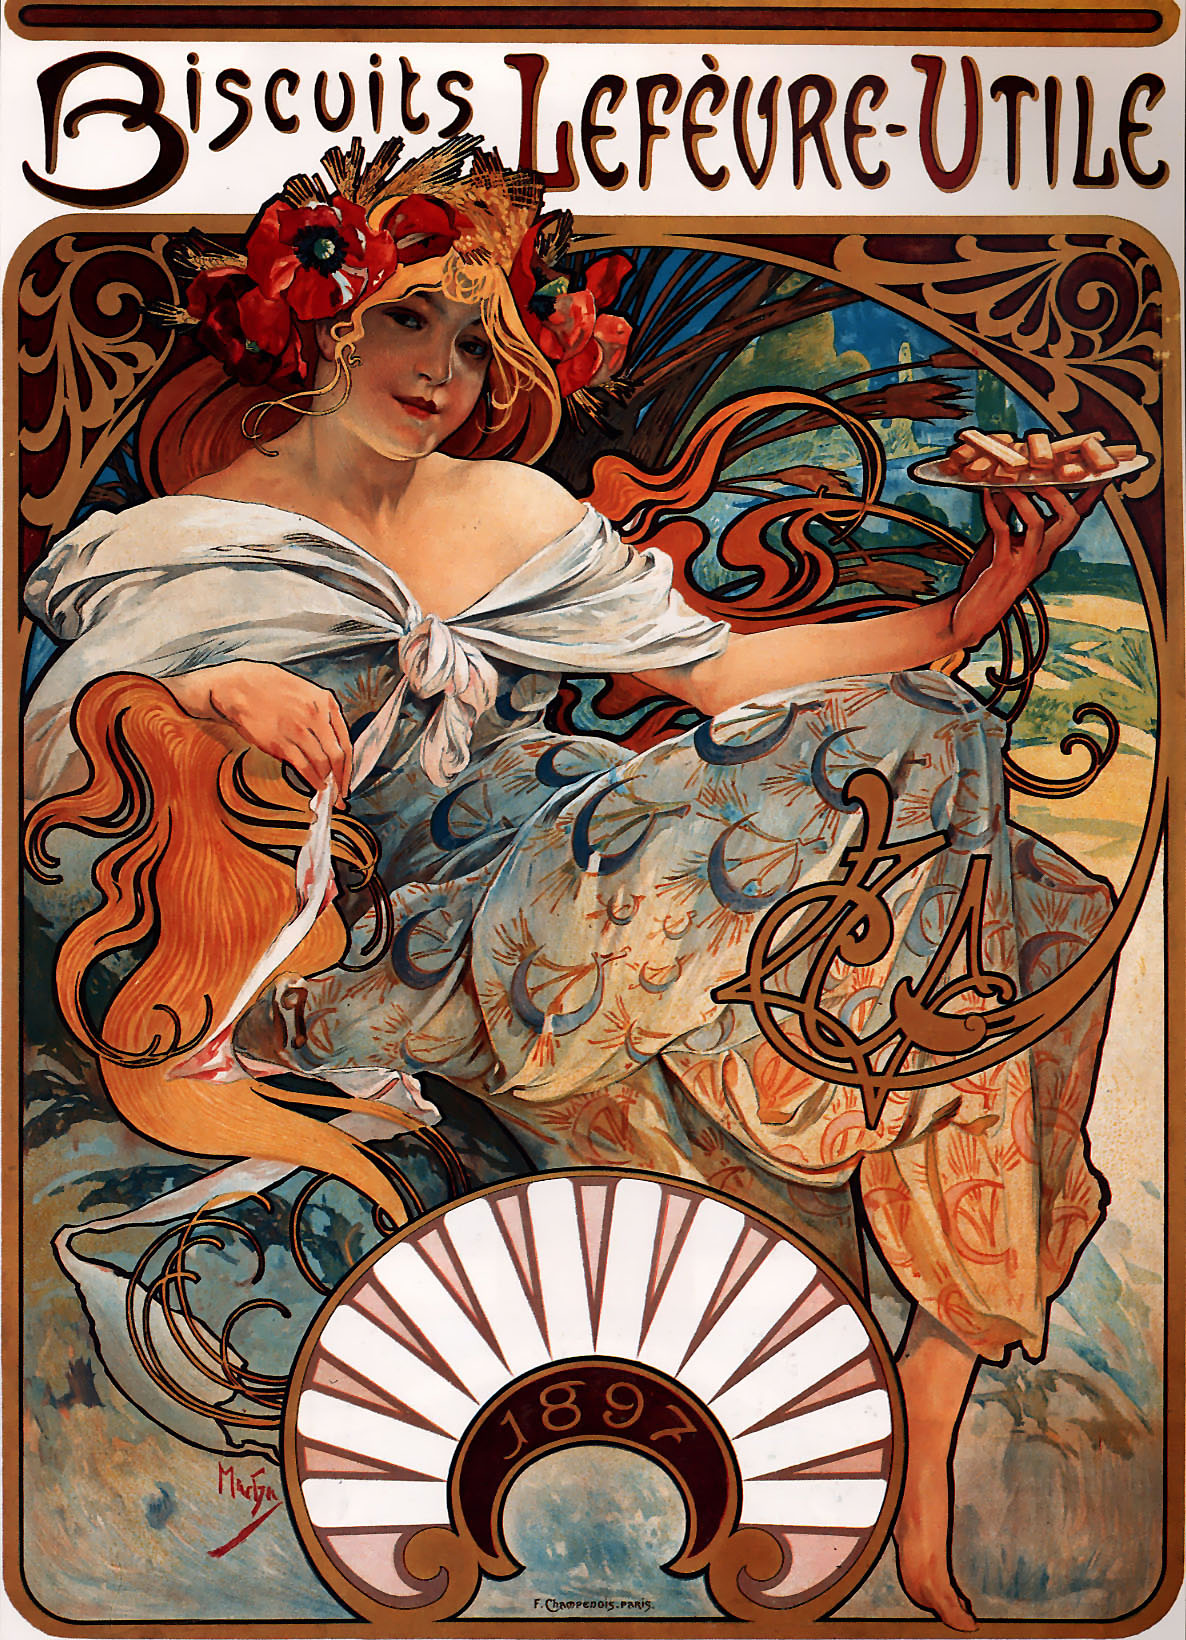 Biscuits Lefèvre-Utile by Alphonse Mucha, 1896